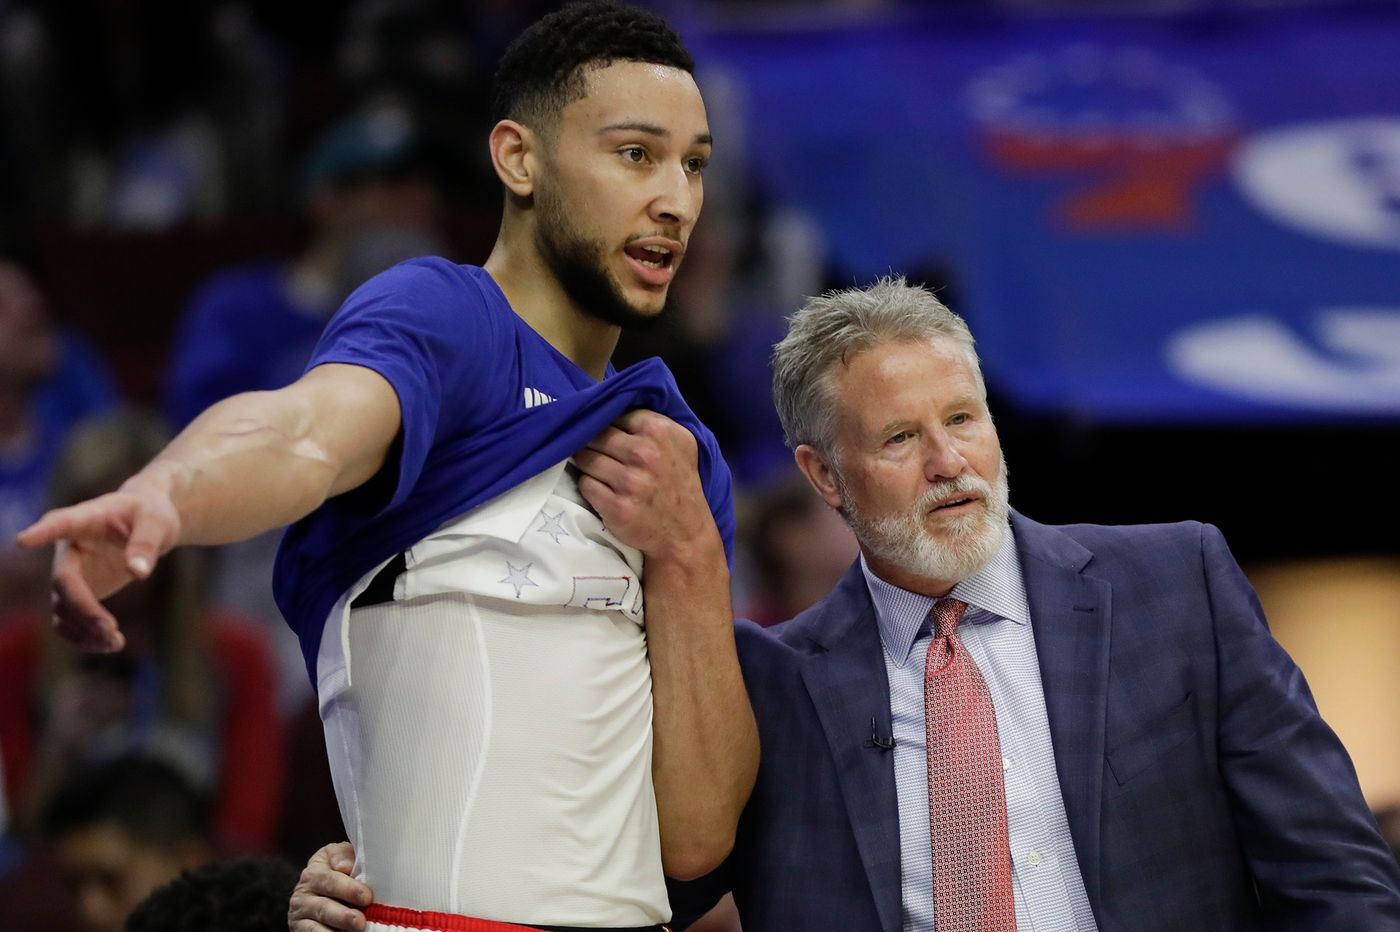 Ben Simmons took a legitimate, in-game three-pointer, and the Sixers want more